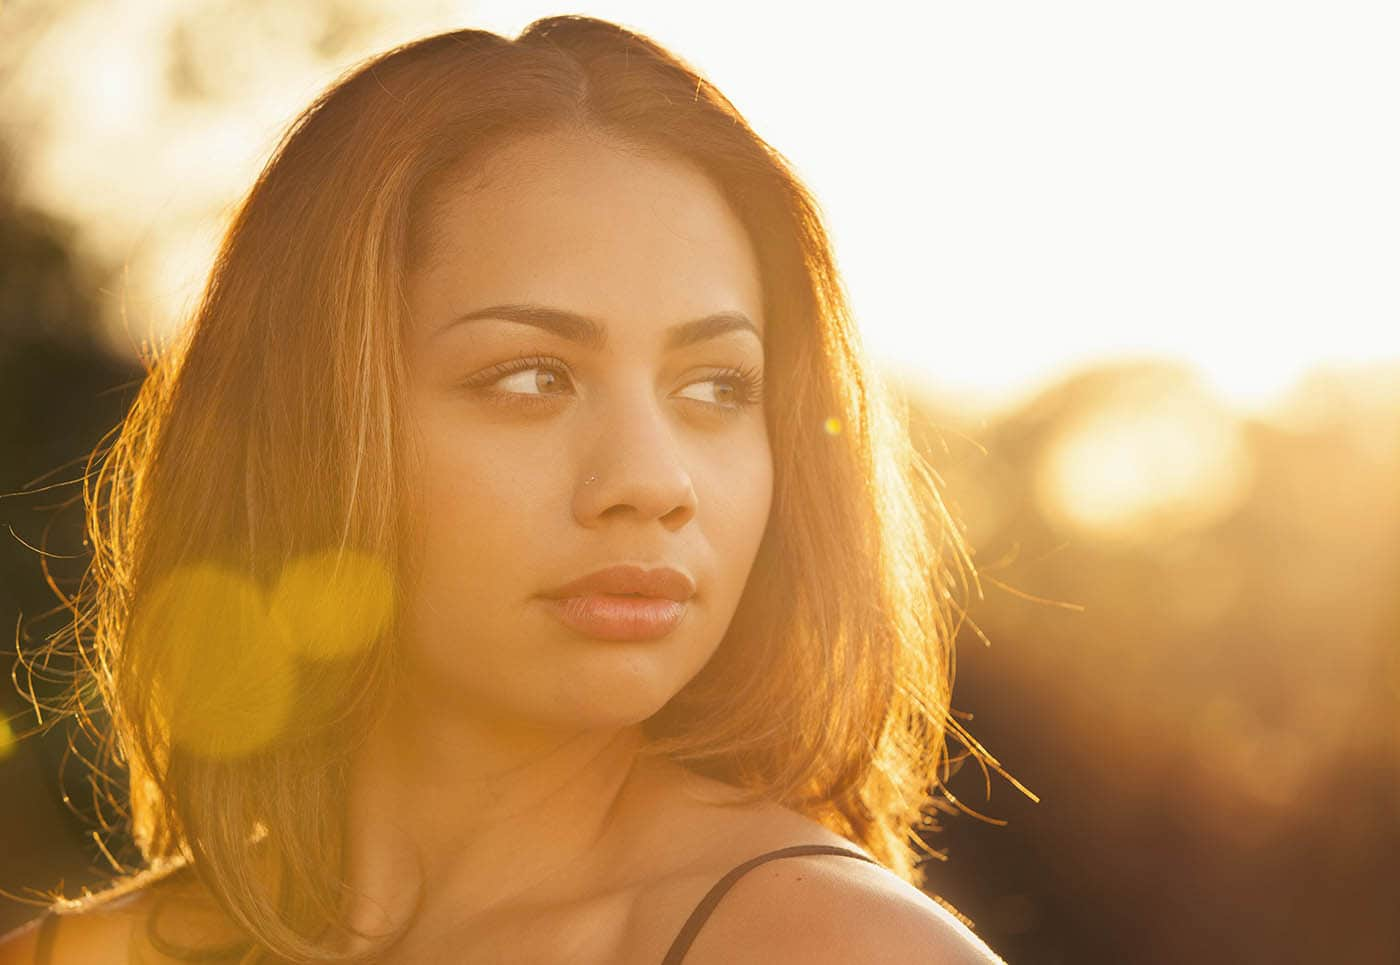 Backlit portrait with lens flare of a young woman staring into the distance on a summer day.